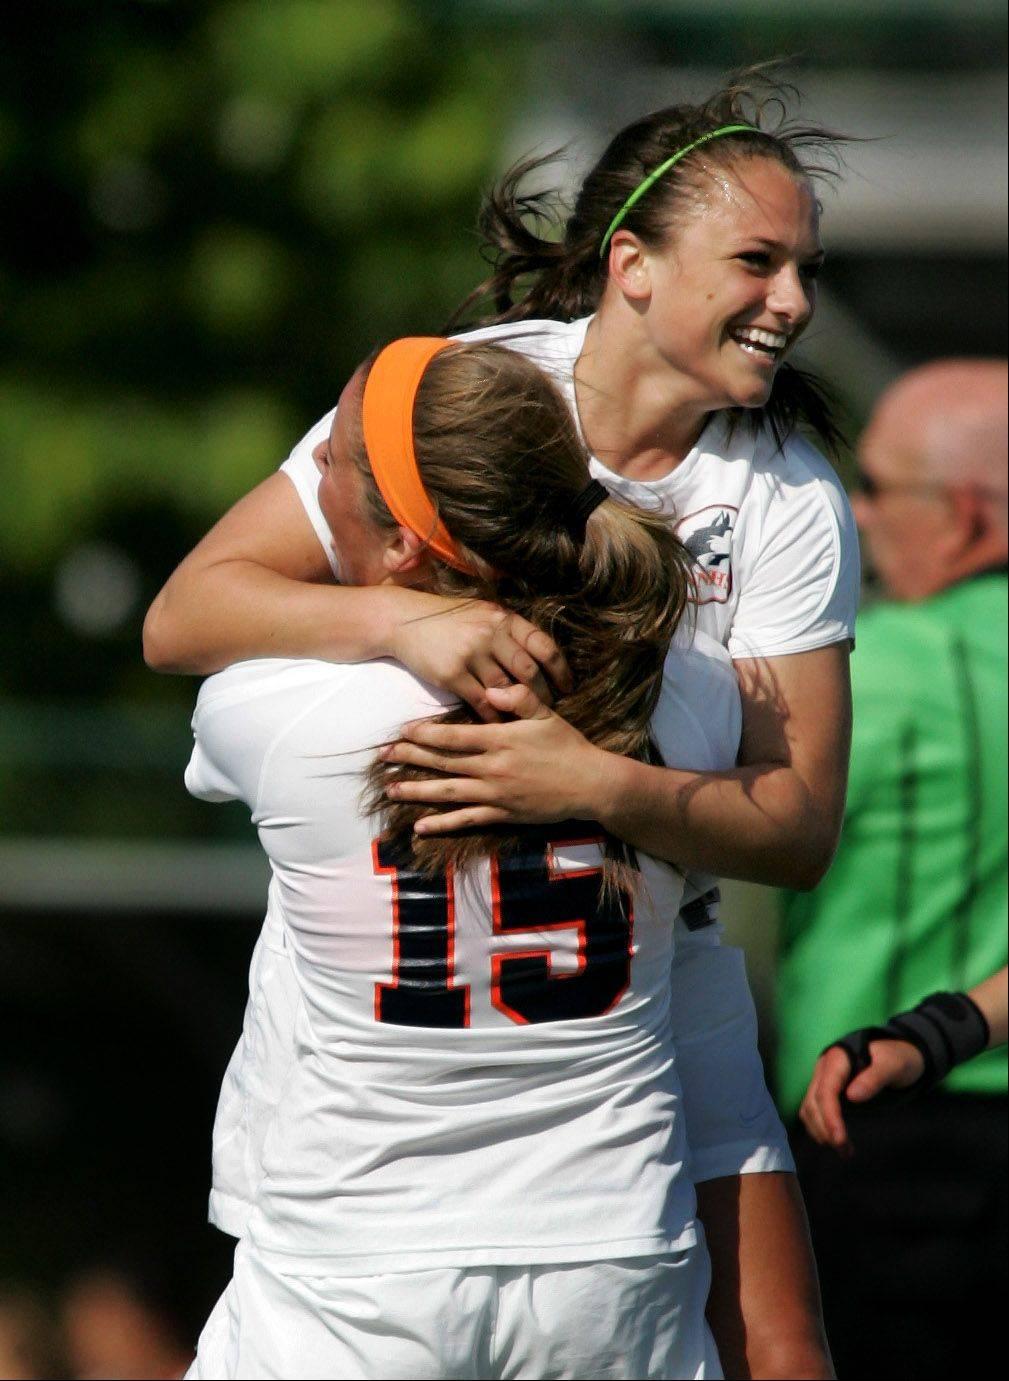 Bev Horne/bhorne@dailyherald.com � Christa Szalach of Naperville North gets a hug from teammate Cora Climo (15) after her goal in the first half against Naperville Central in Class 3A Waubonsie Valley sectional semifinal girls soccer Tuesday in Aurora.